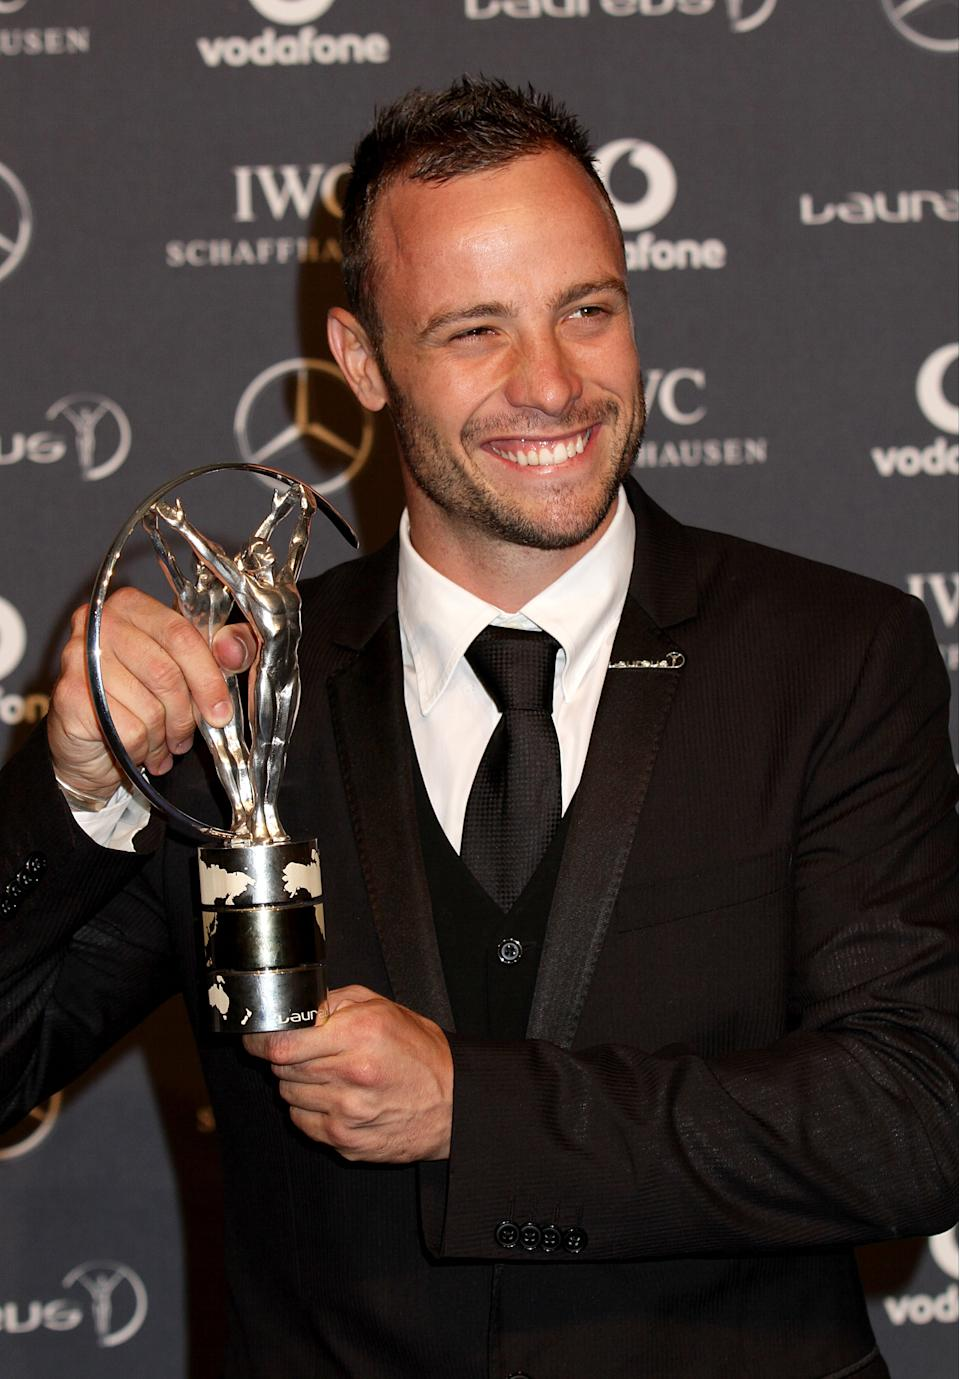 Oscar Pistorius the winner of the Laureus World Sportsperson of the Year with a Disability during 2012 Laureus World Sports Awards, at Central Hall Westminster, Storey's Gate, London.